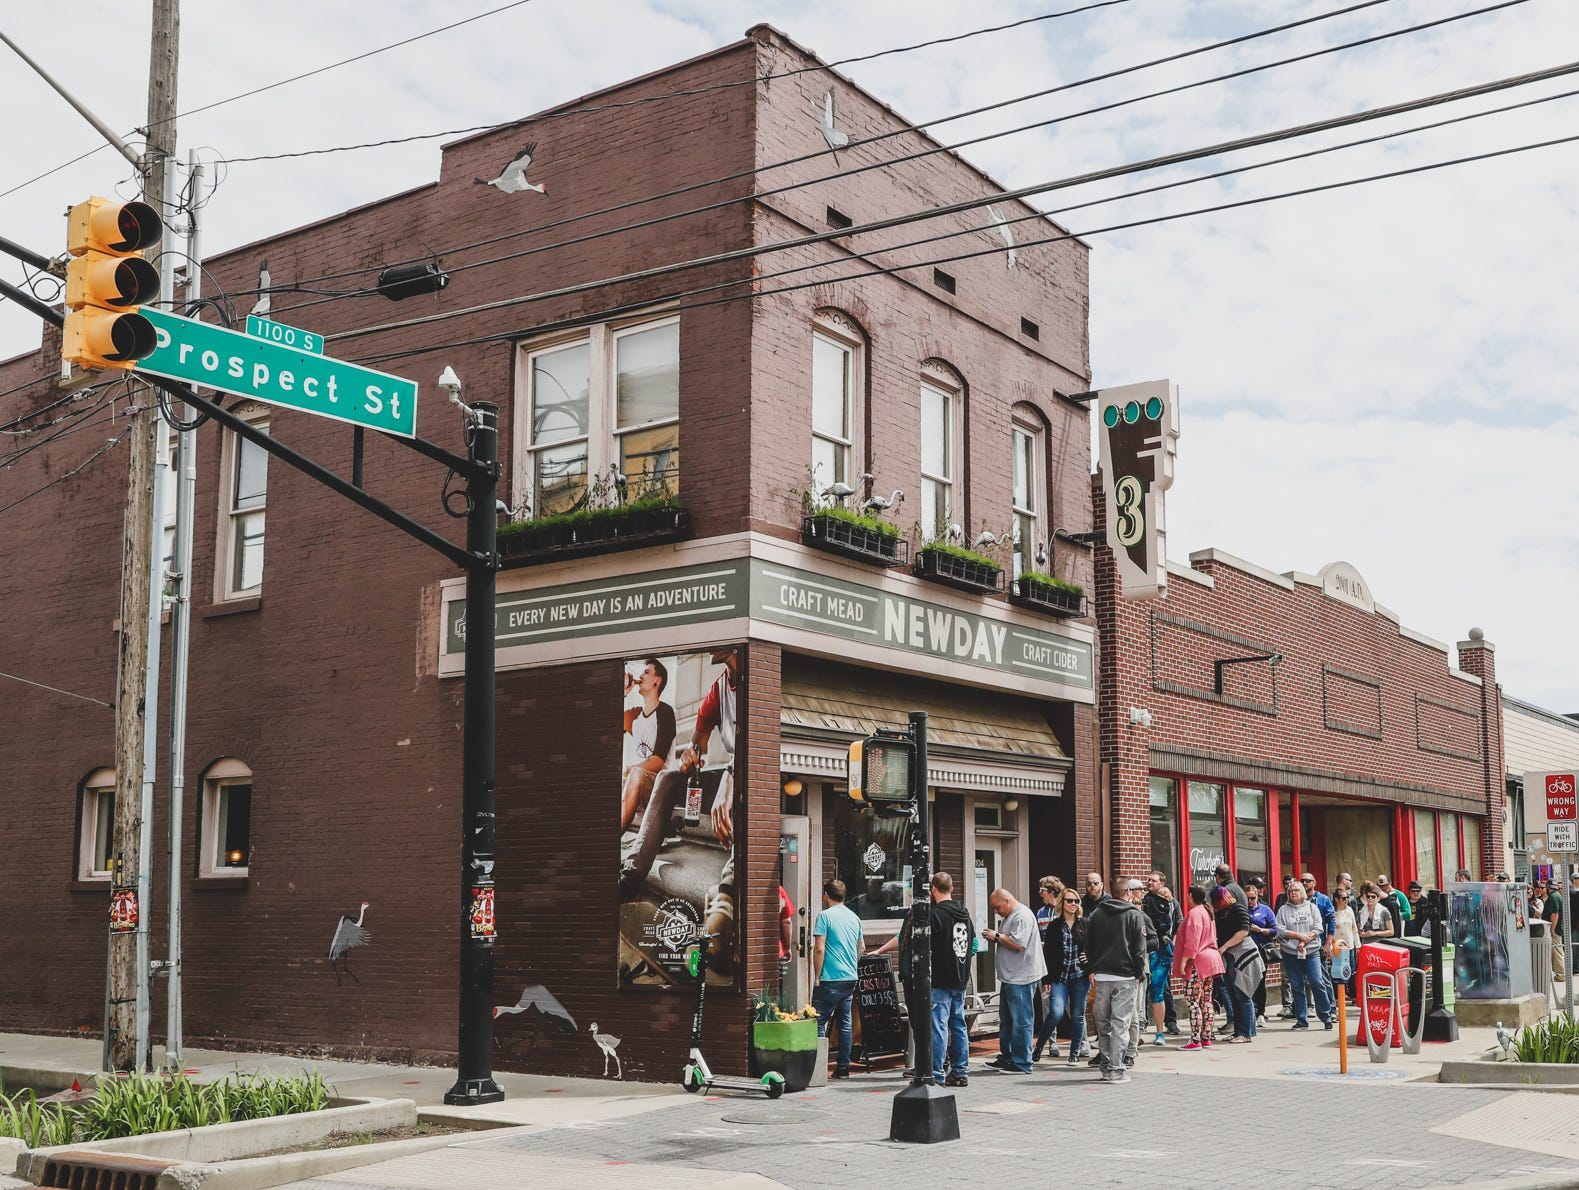 Festival-goers line up outside New Day Meadery, during the Virginia Avenue Music Fest, held in Fountain Square, located in Indianapolis, on Saturday, May 11, 2019.